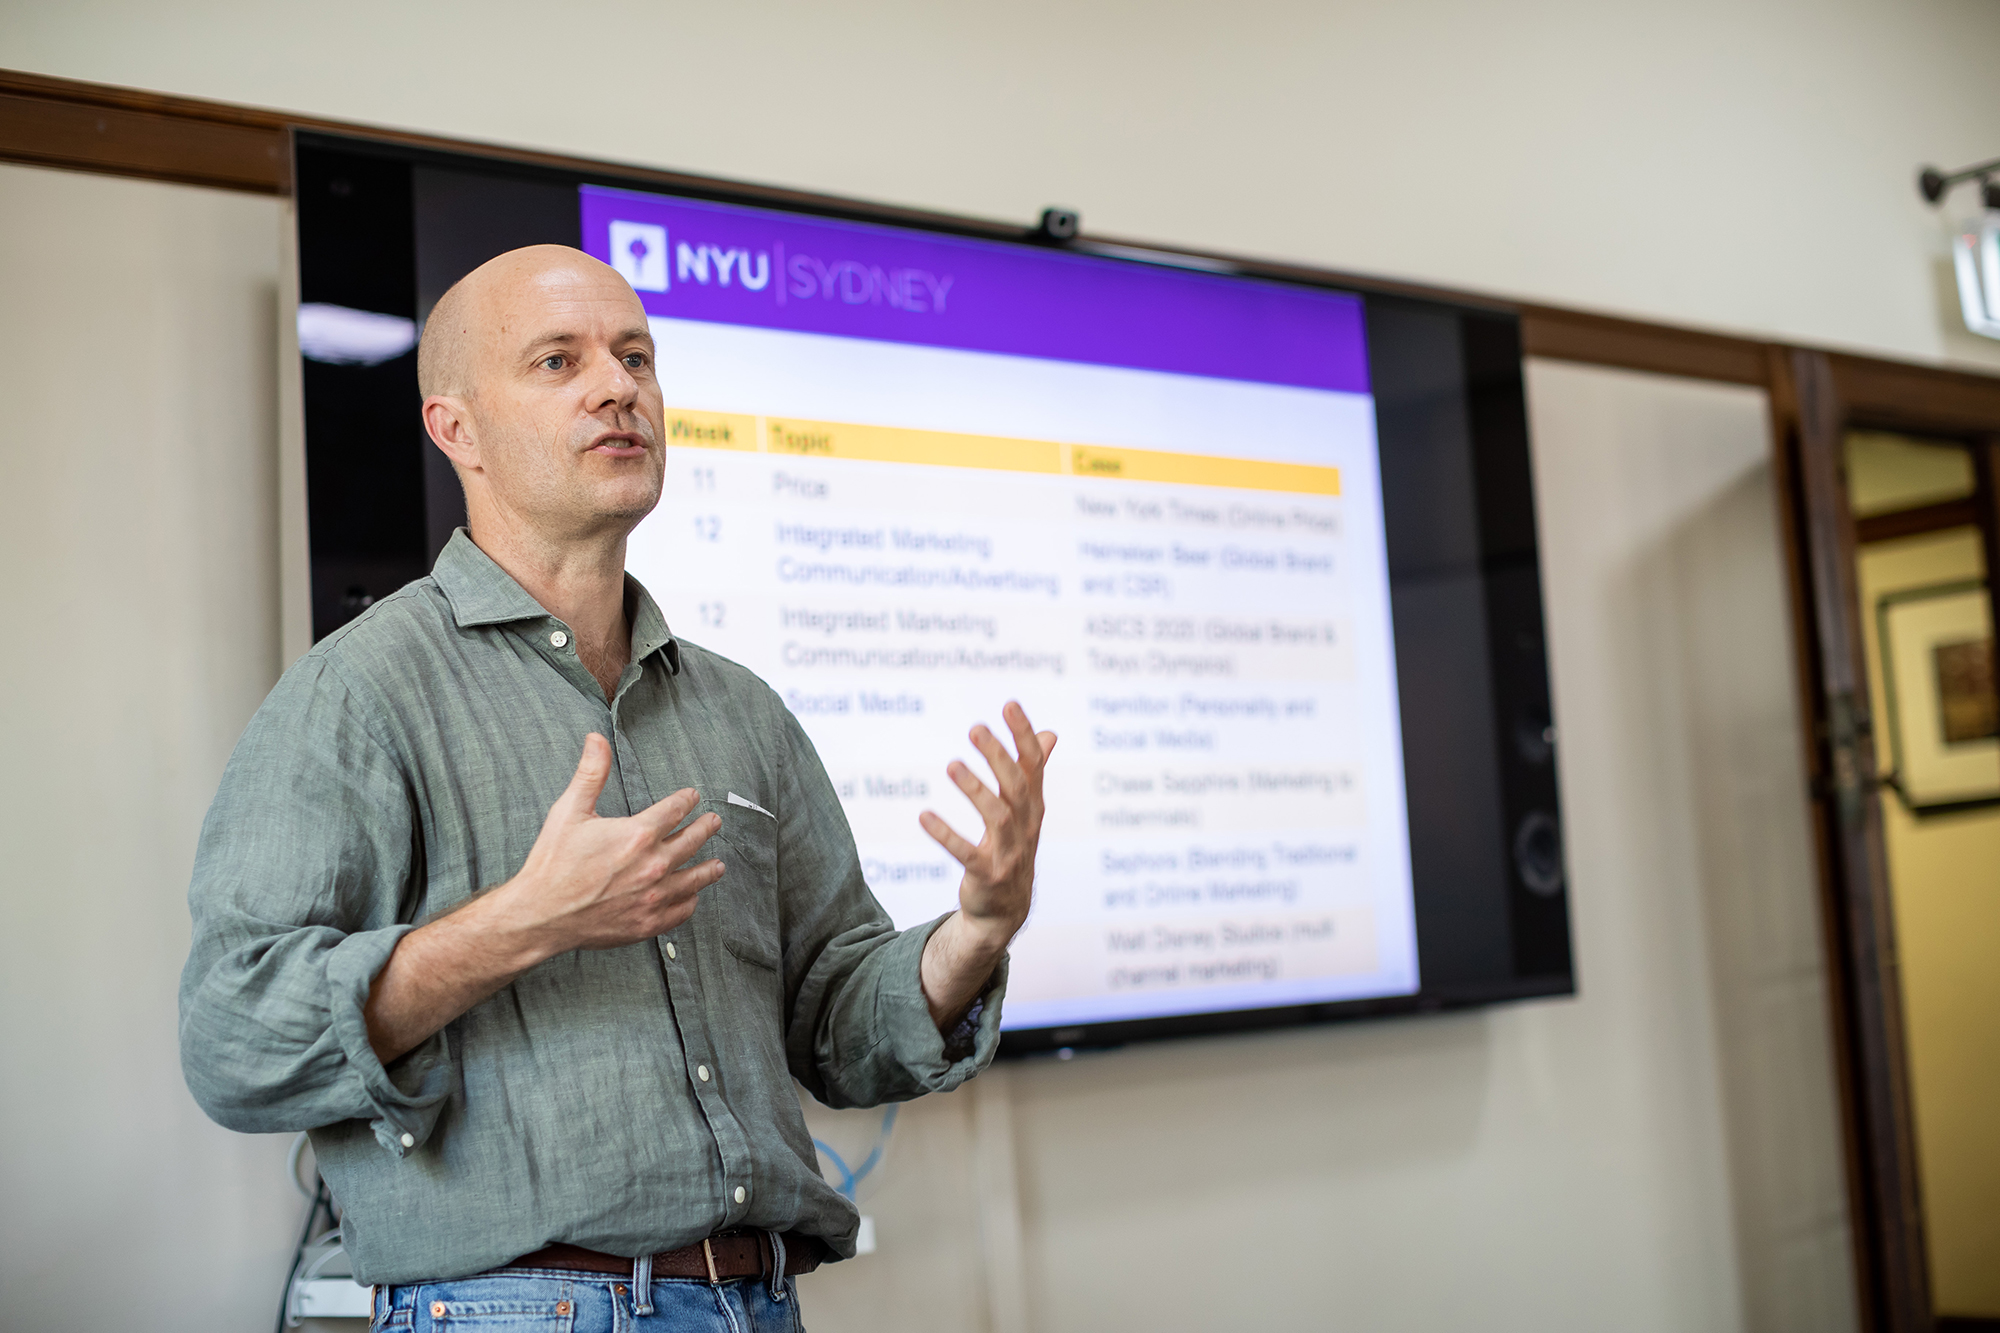 Professor Andy West leads a marketing course at NYU Sydney